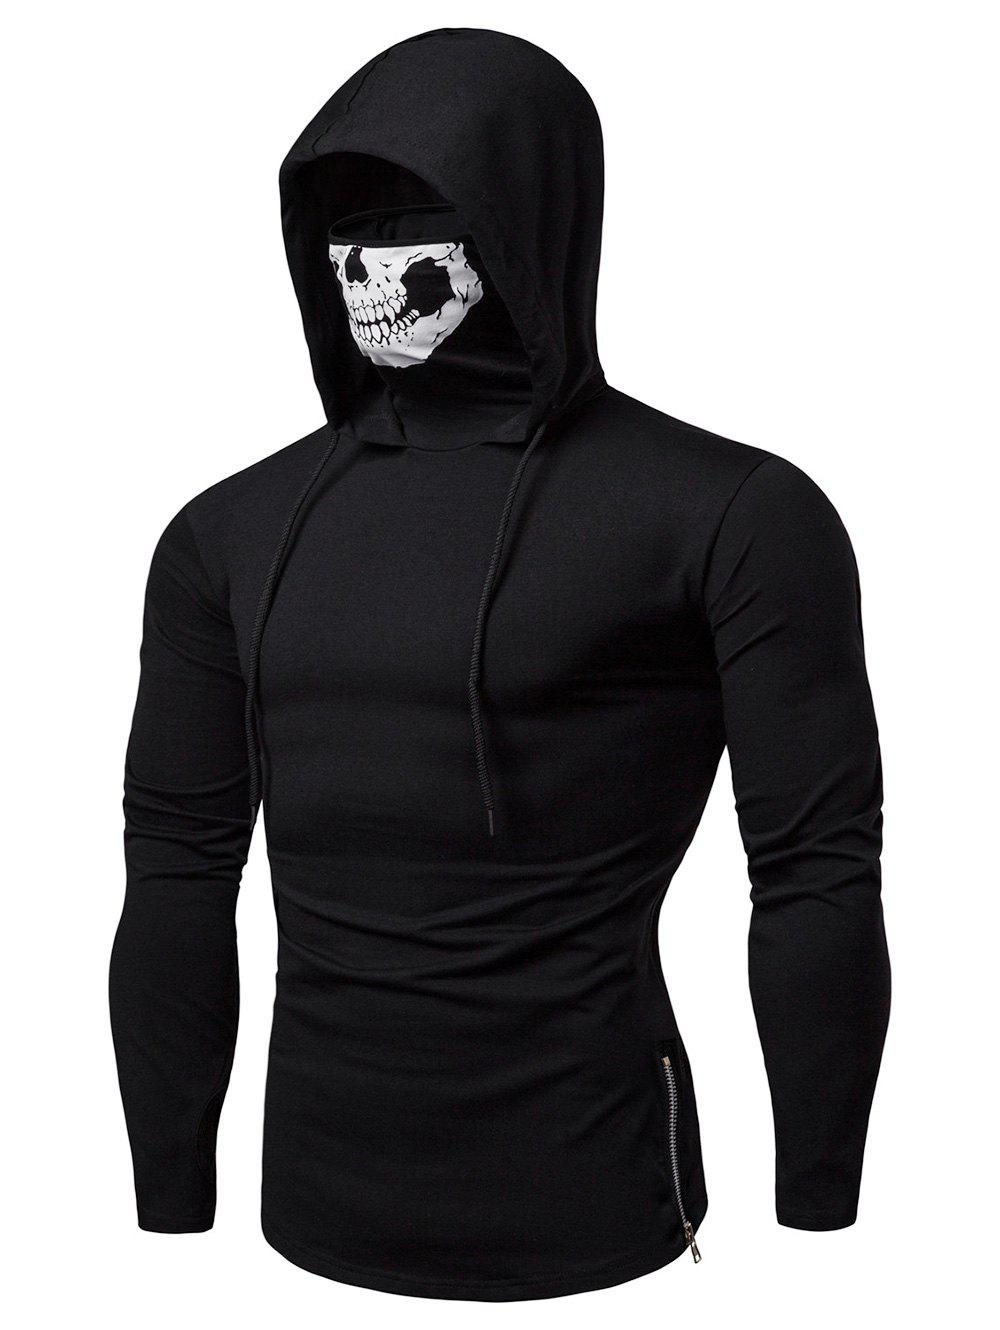 a48c0c48 51% OFF] Fashion Drawstring Scare Mask Hoodie For Man | Rosegal